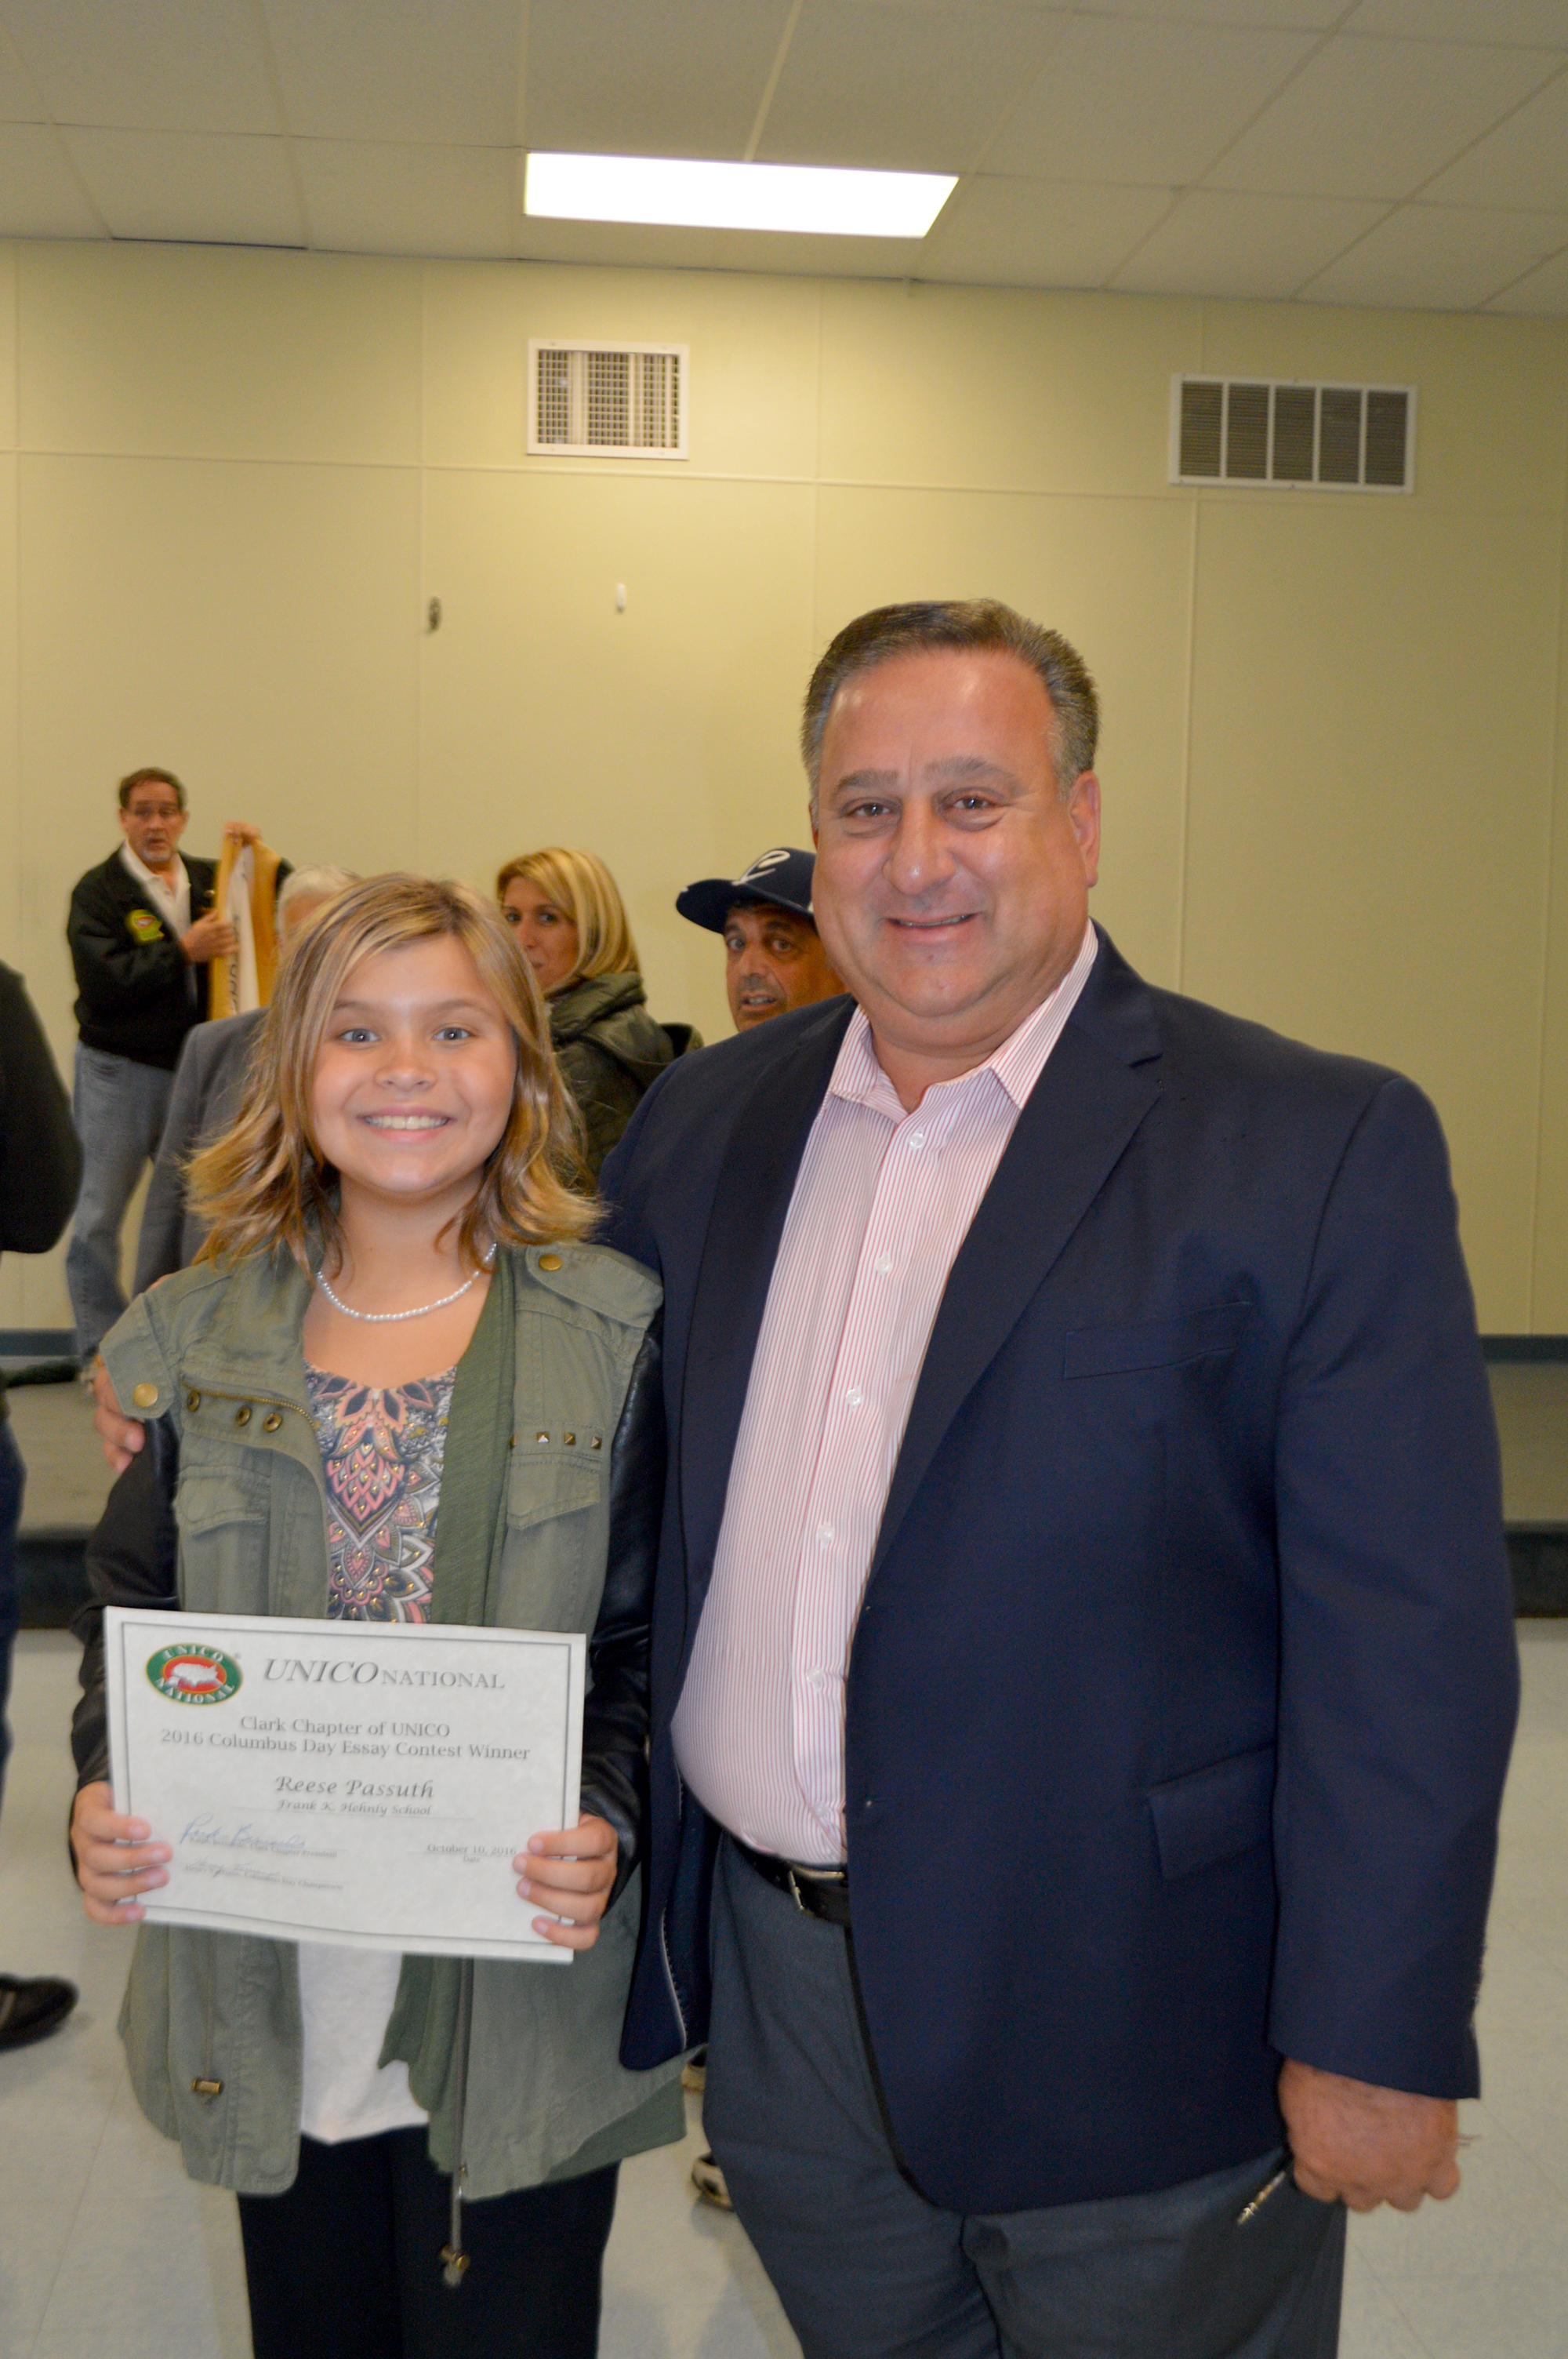 renna media hehnly student wins columbus essay contest   above reese passuth fifth grader at the frank k hehnly school and